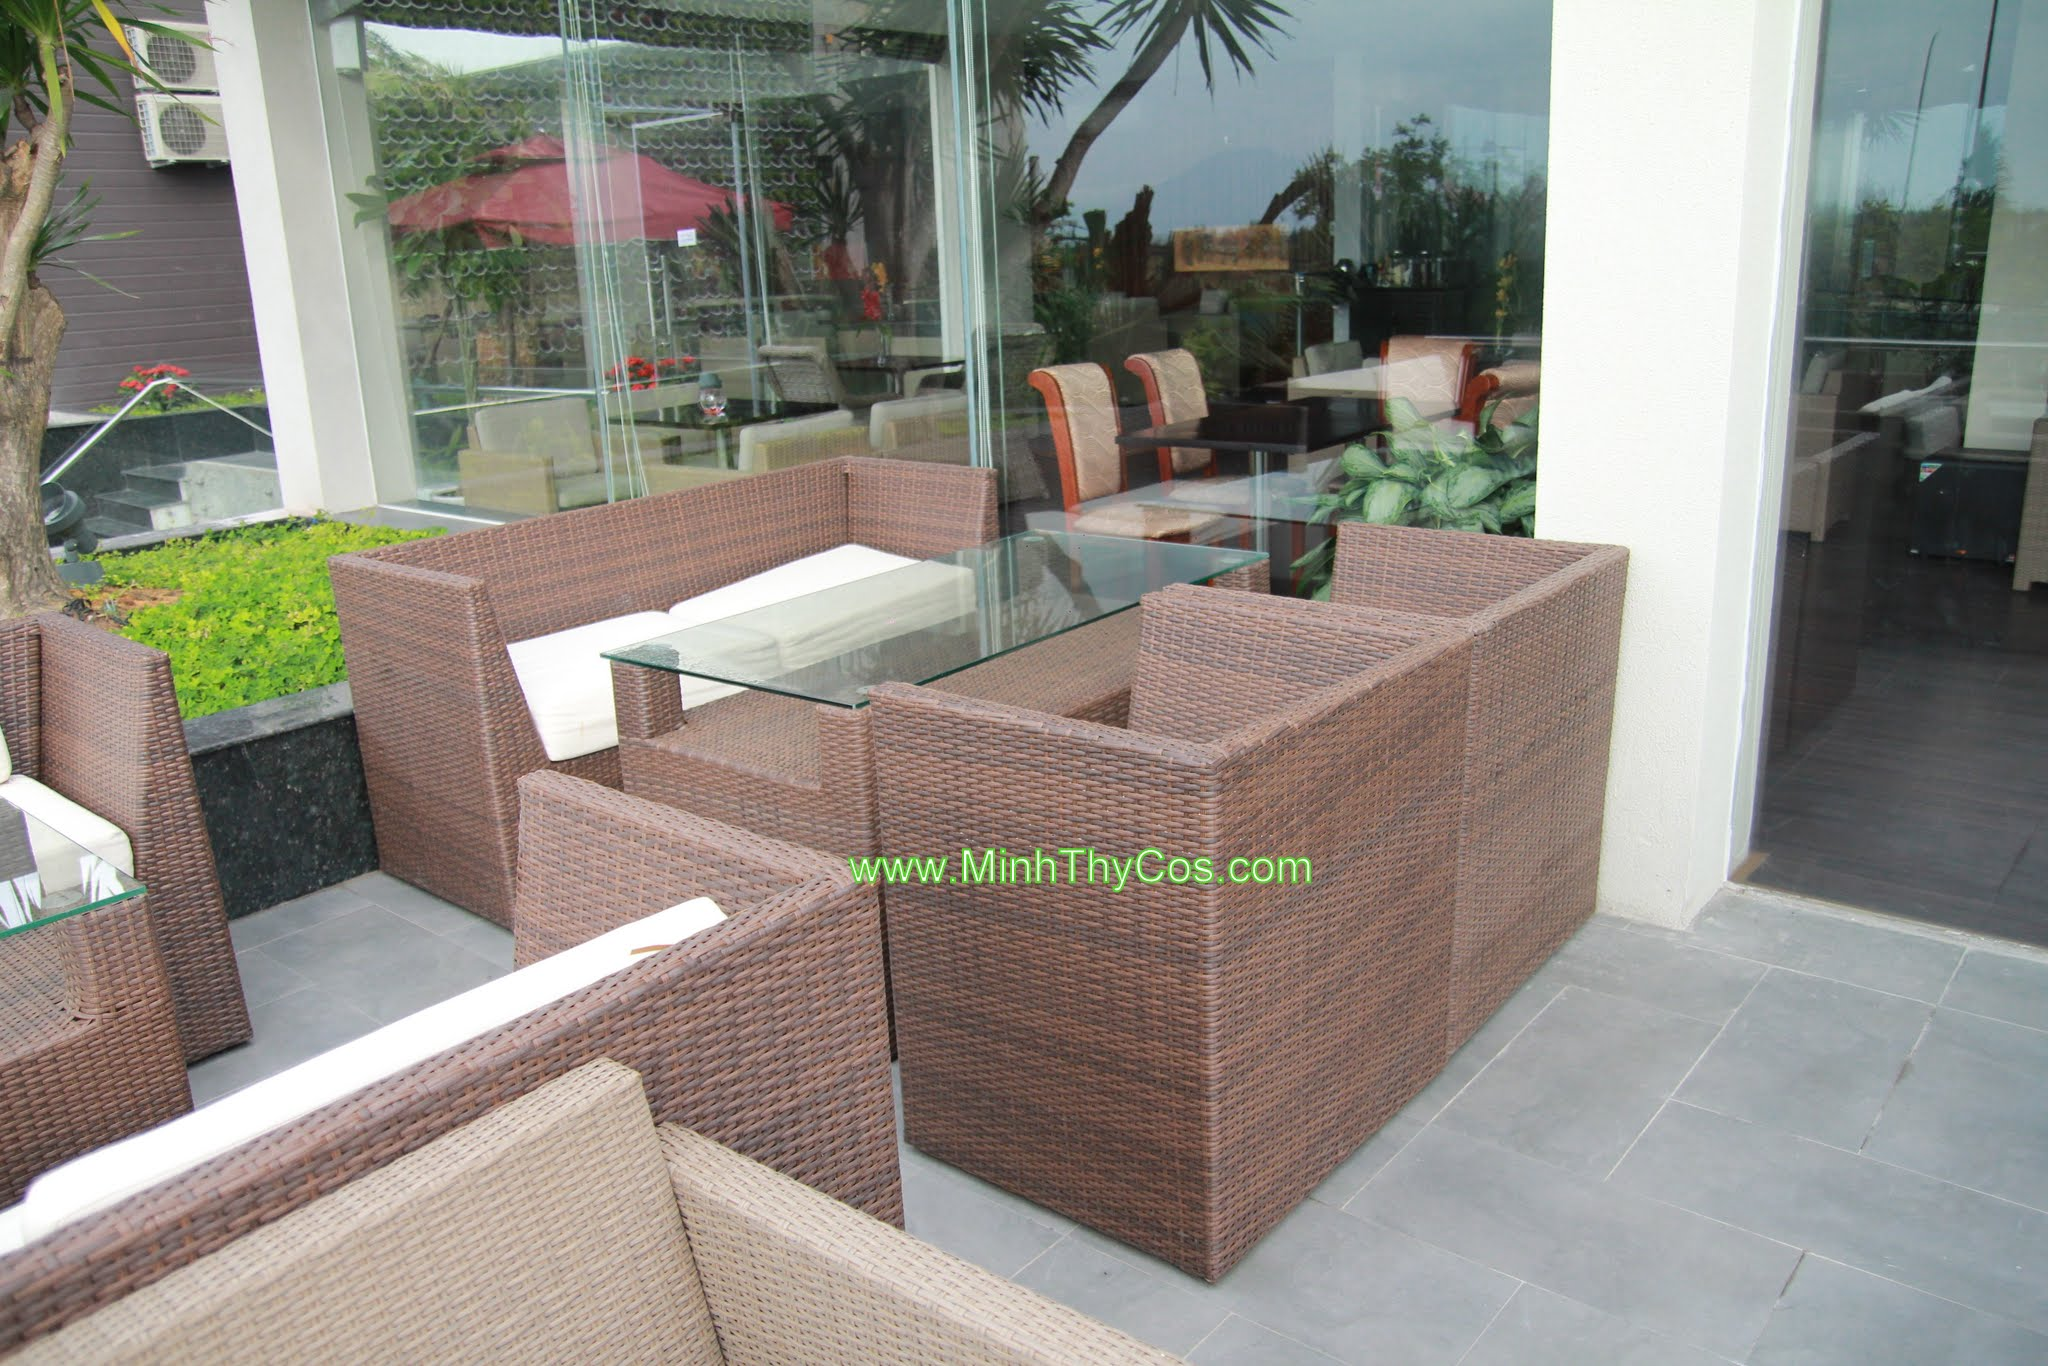 Outdoor wicker sofa set cafe SunOcean Da Nang